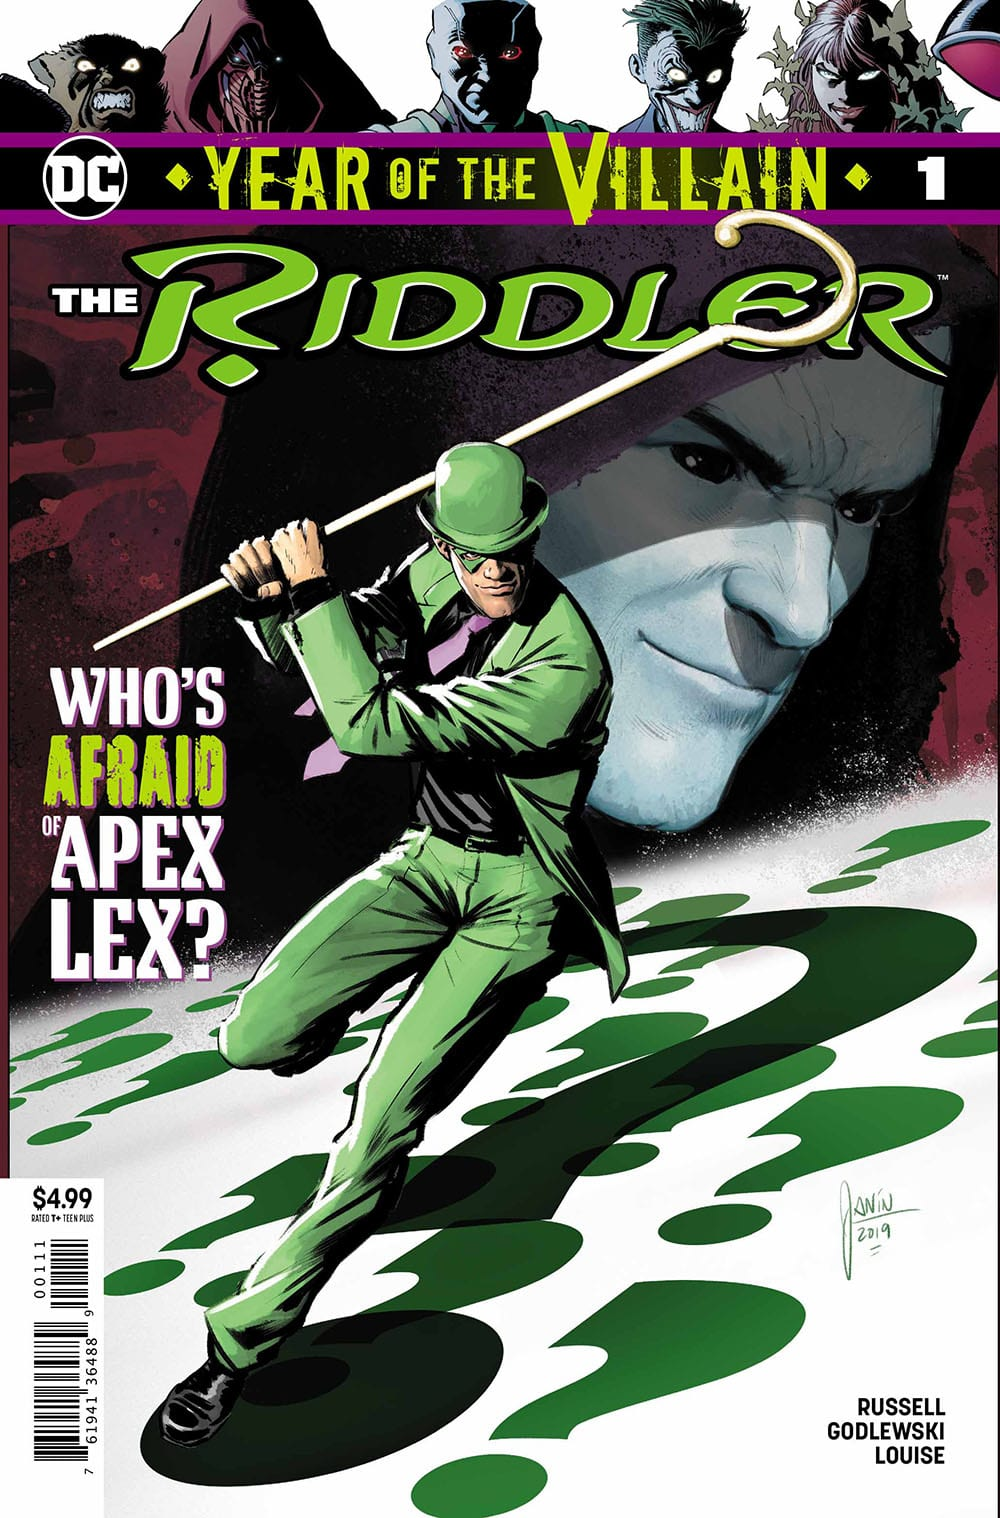 The Riddler: Year of the Villain Cover - DC Comics